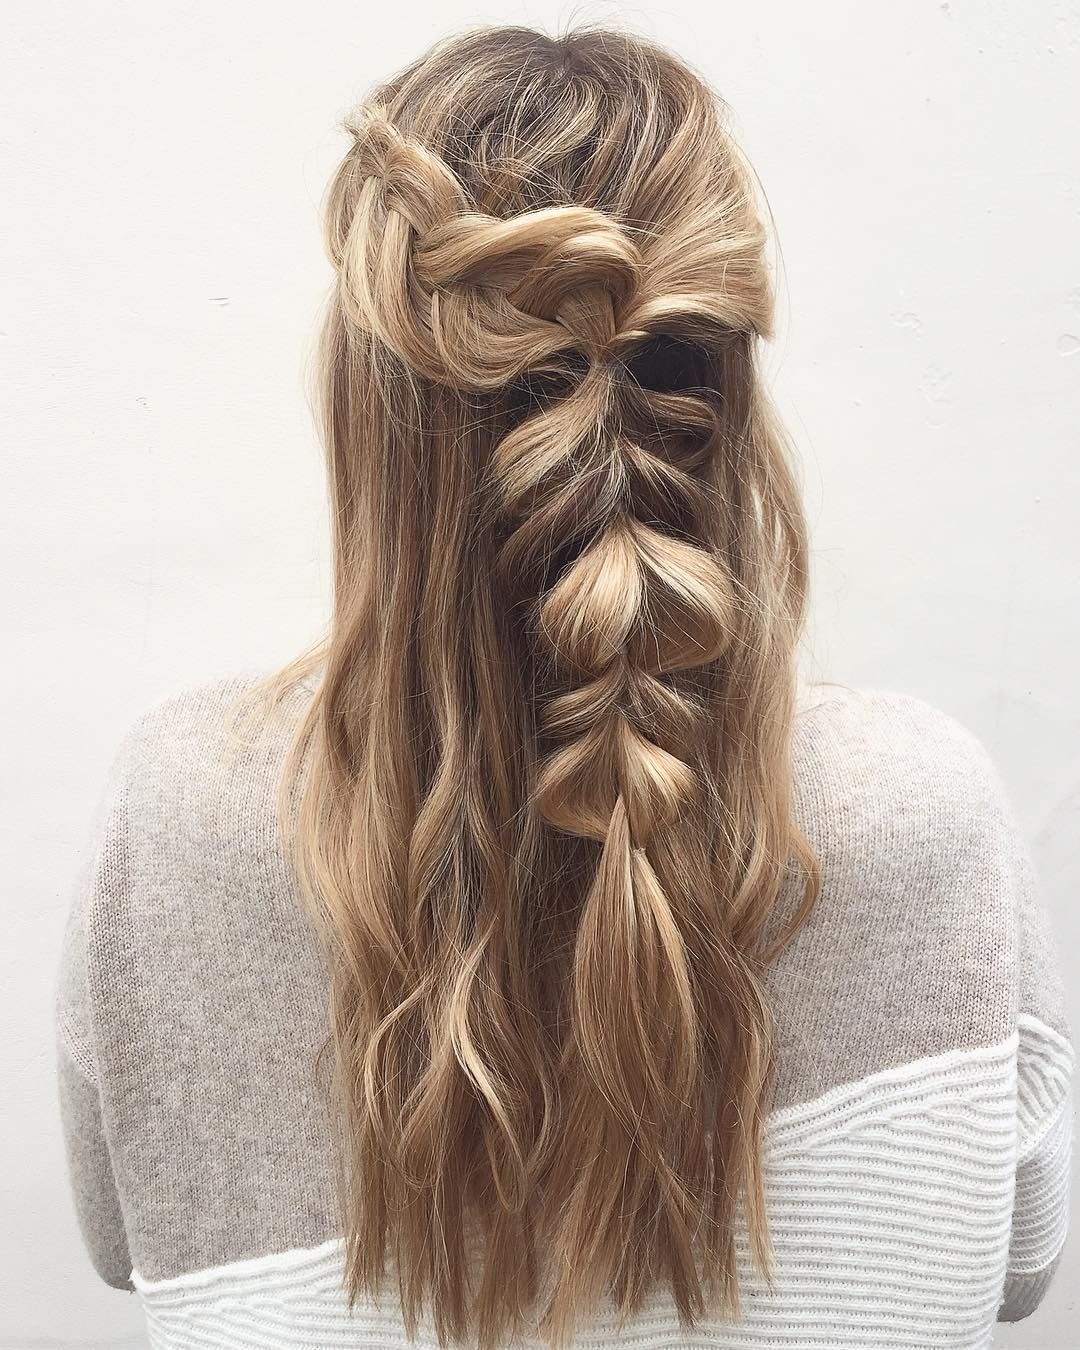 Boho braid featured hairstyle inspiration michael gray hair